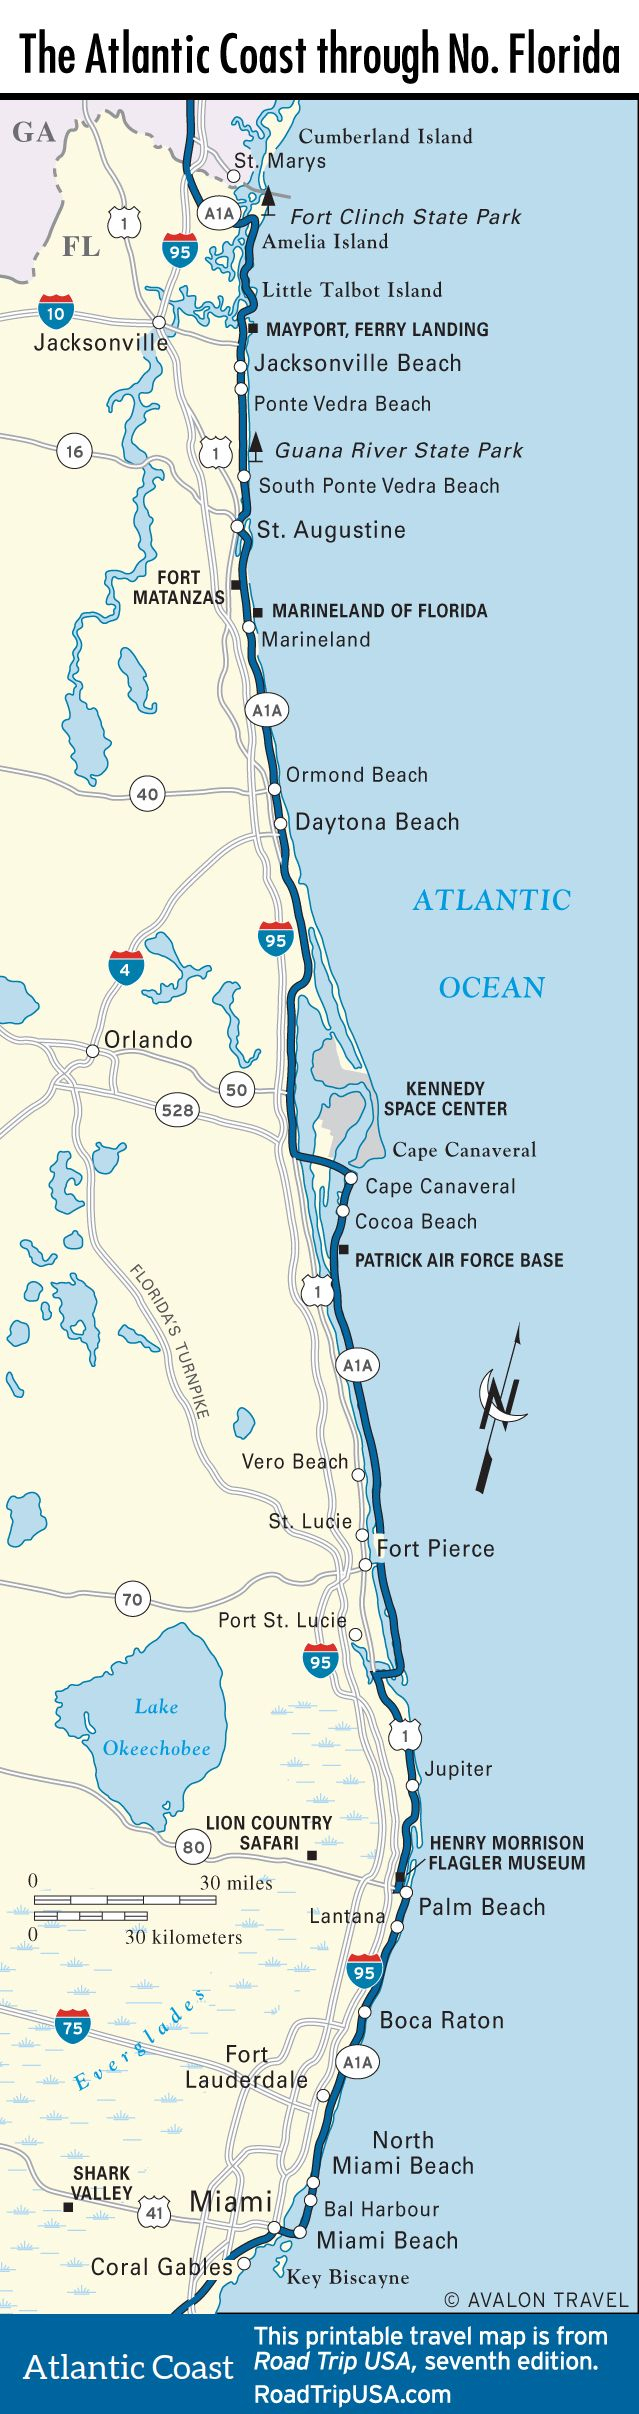 Map Of The Atlantic Coast Through Northern Florida. | Florida A1A - Map Of Best Beaches In Florida